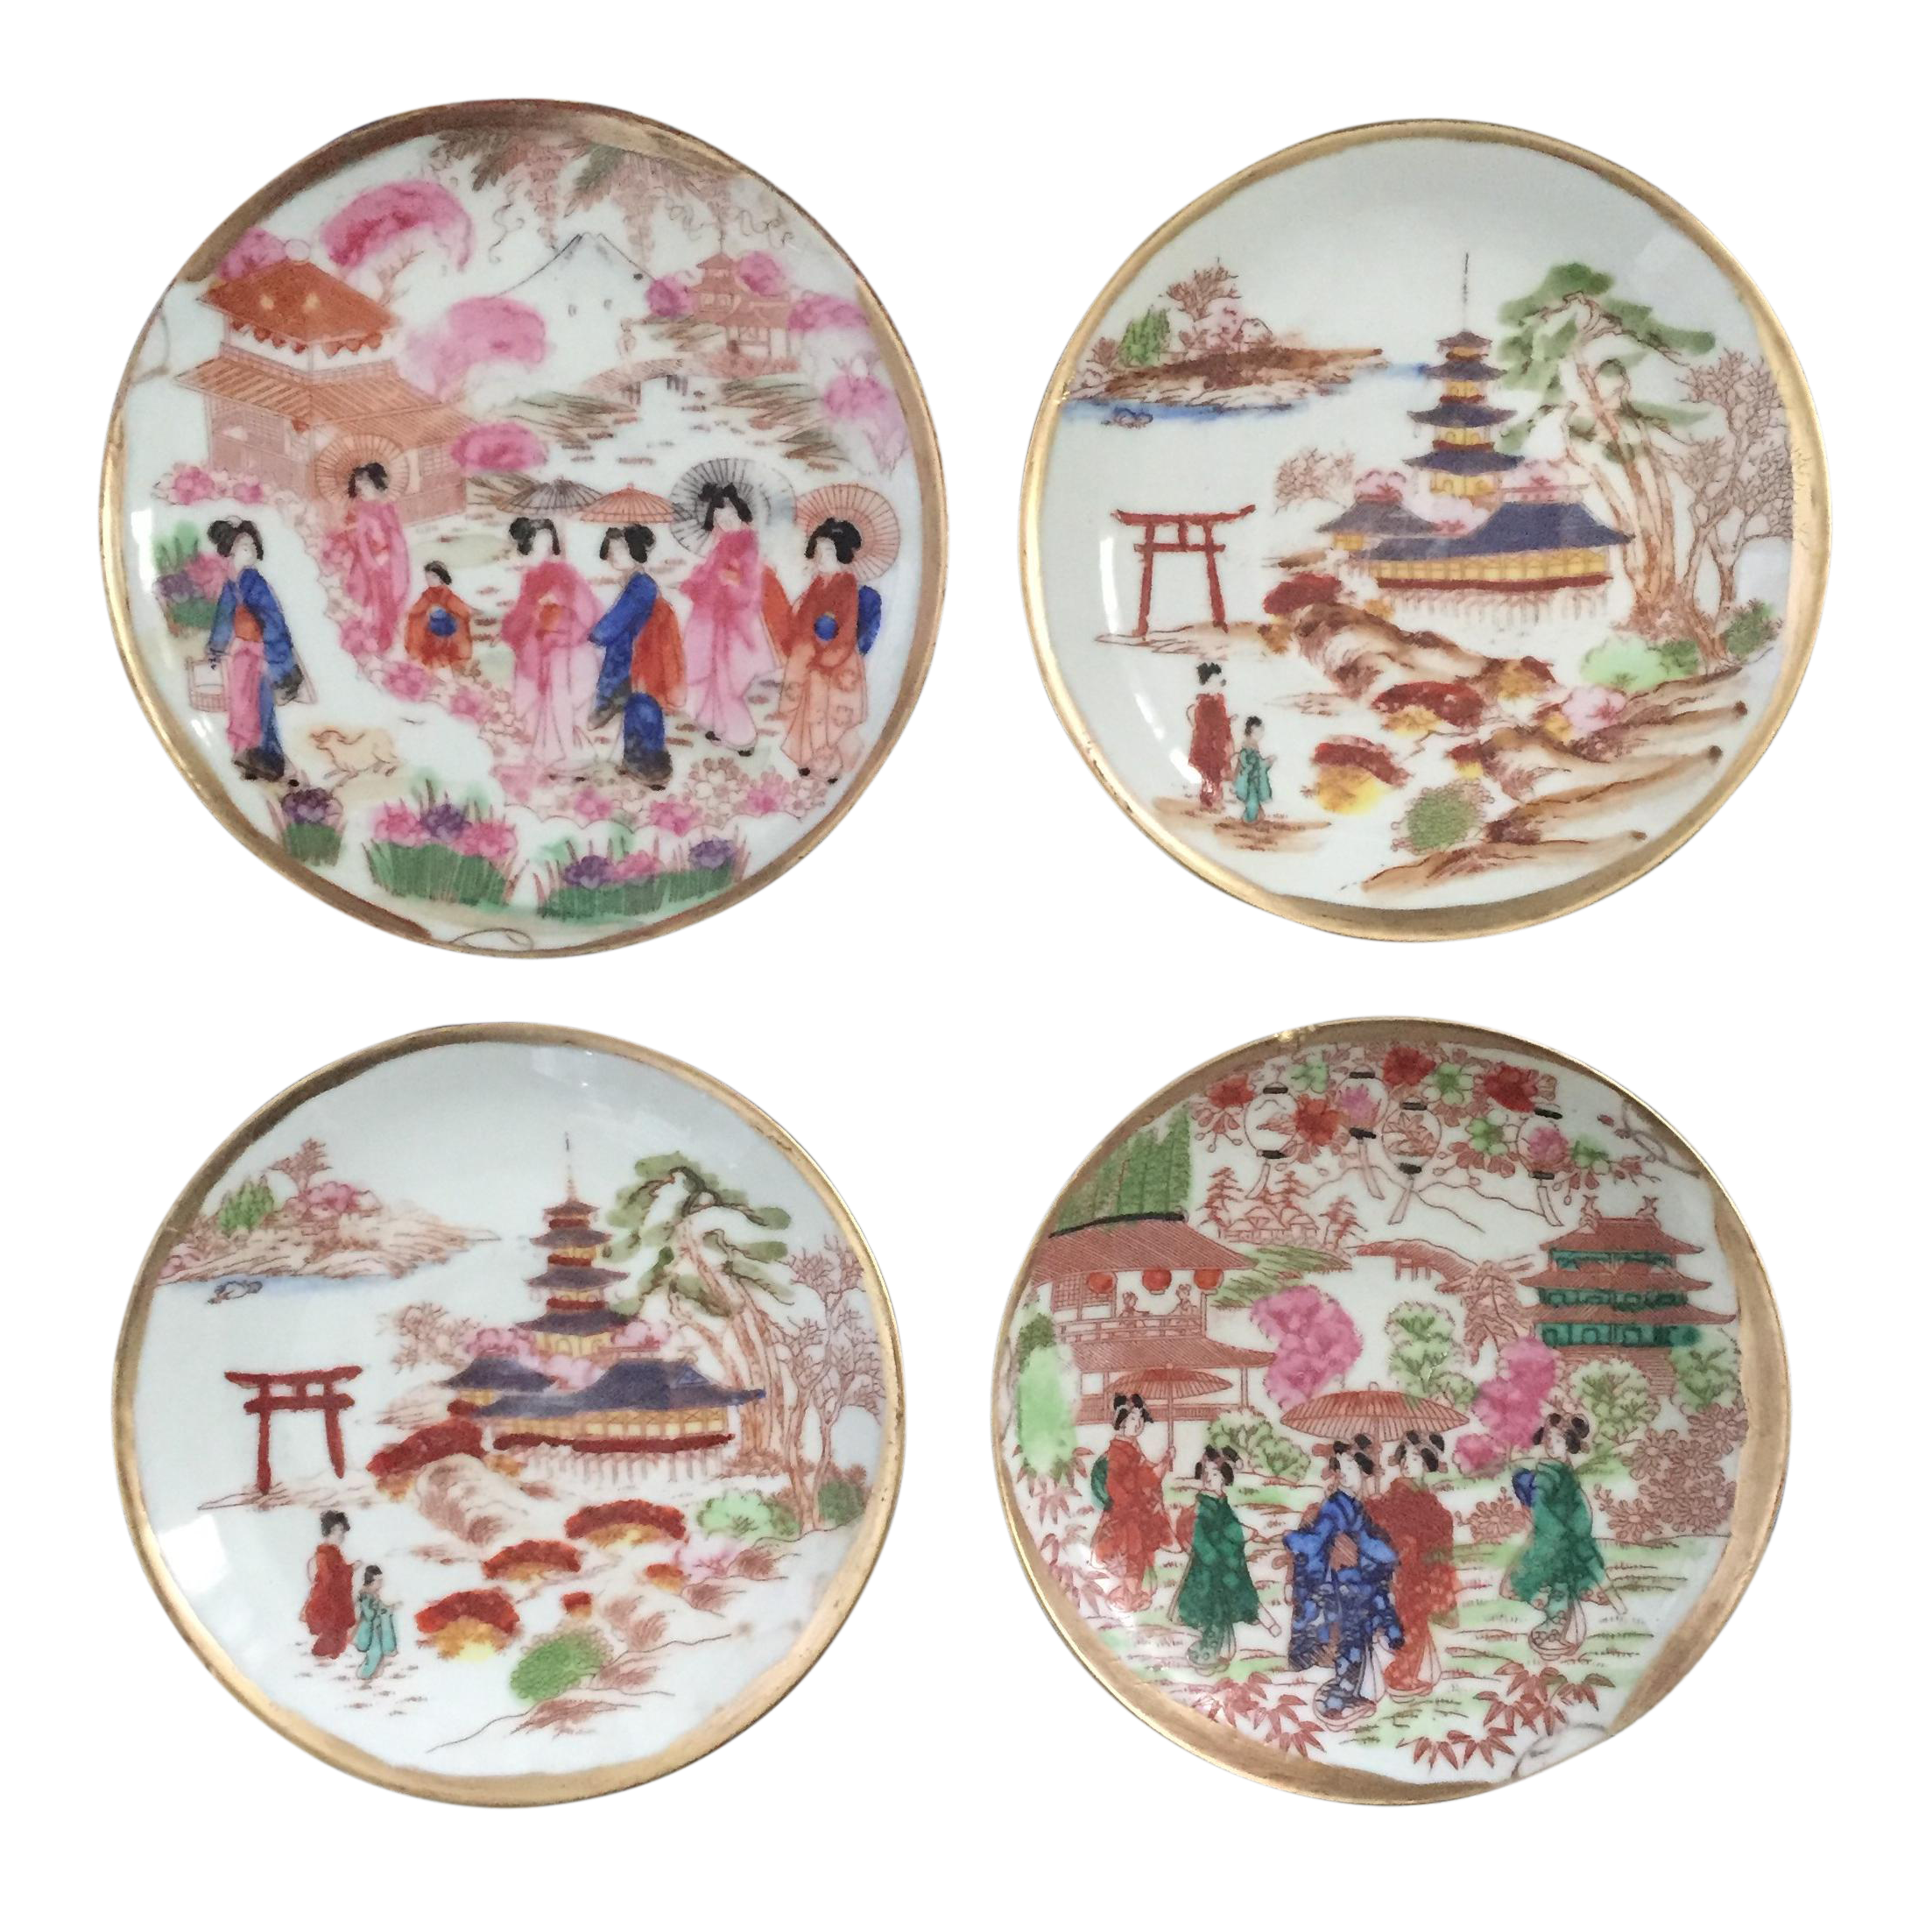 Decorative Chinoiserie Asian Pagoda Scene Plates - Set of 4  sc 1 st  Chairish : asian decorative plates - pezcame.com